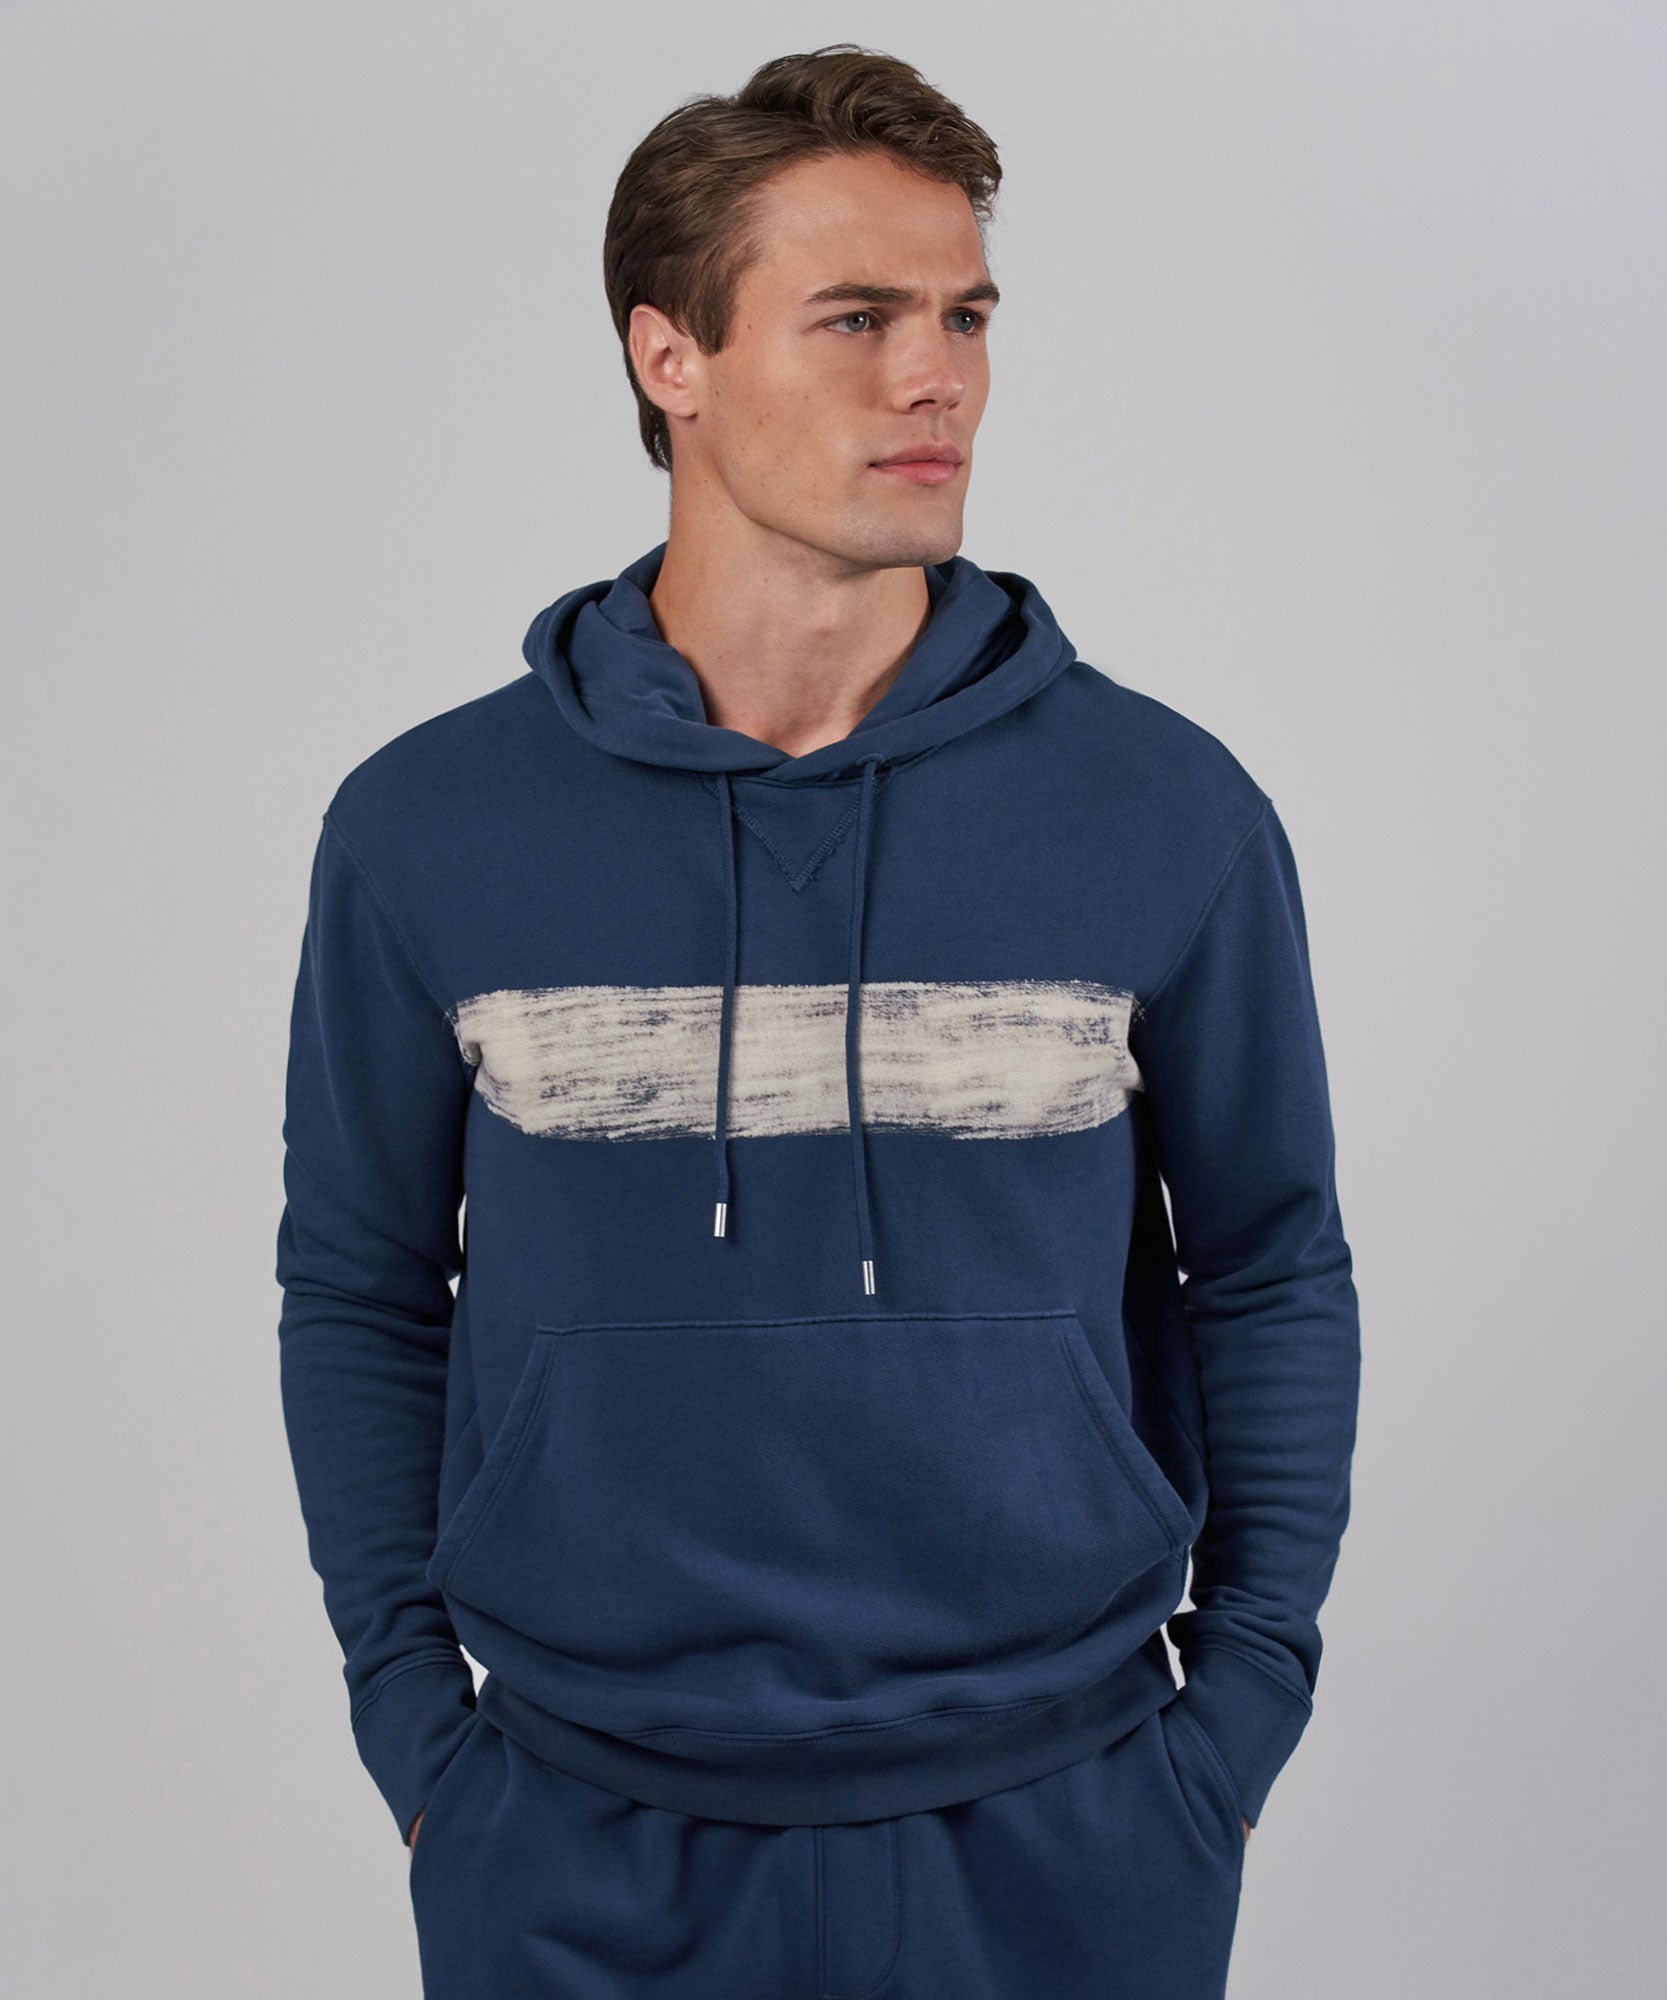 Indigo French Terry Pullover Hoodie - Men's Sweatshirt by ATM Anthony Thomas Melillo